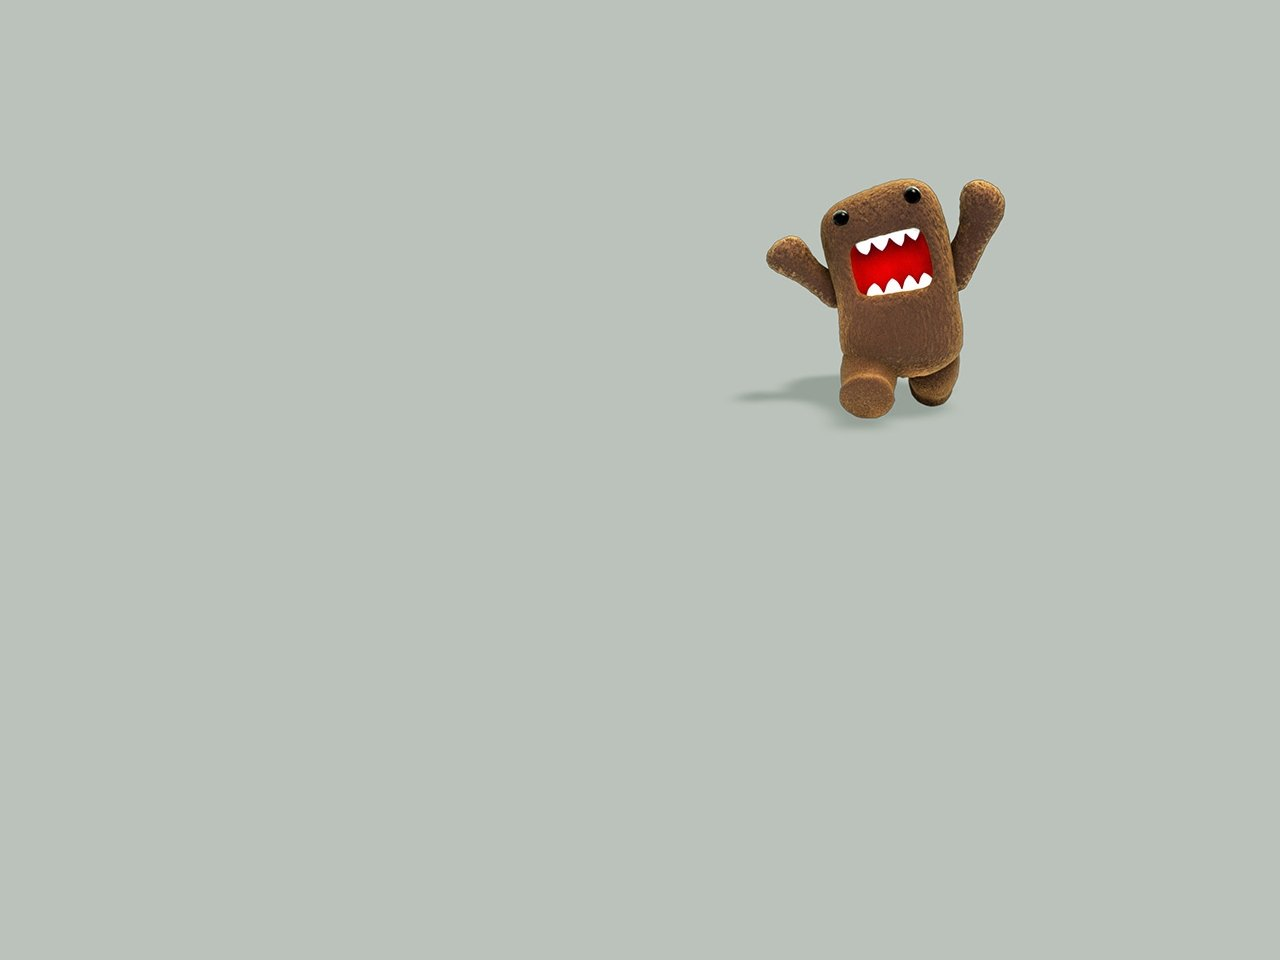 Japanese wallpapers Domo kun NHKs mascot wallpaper 1280x960